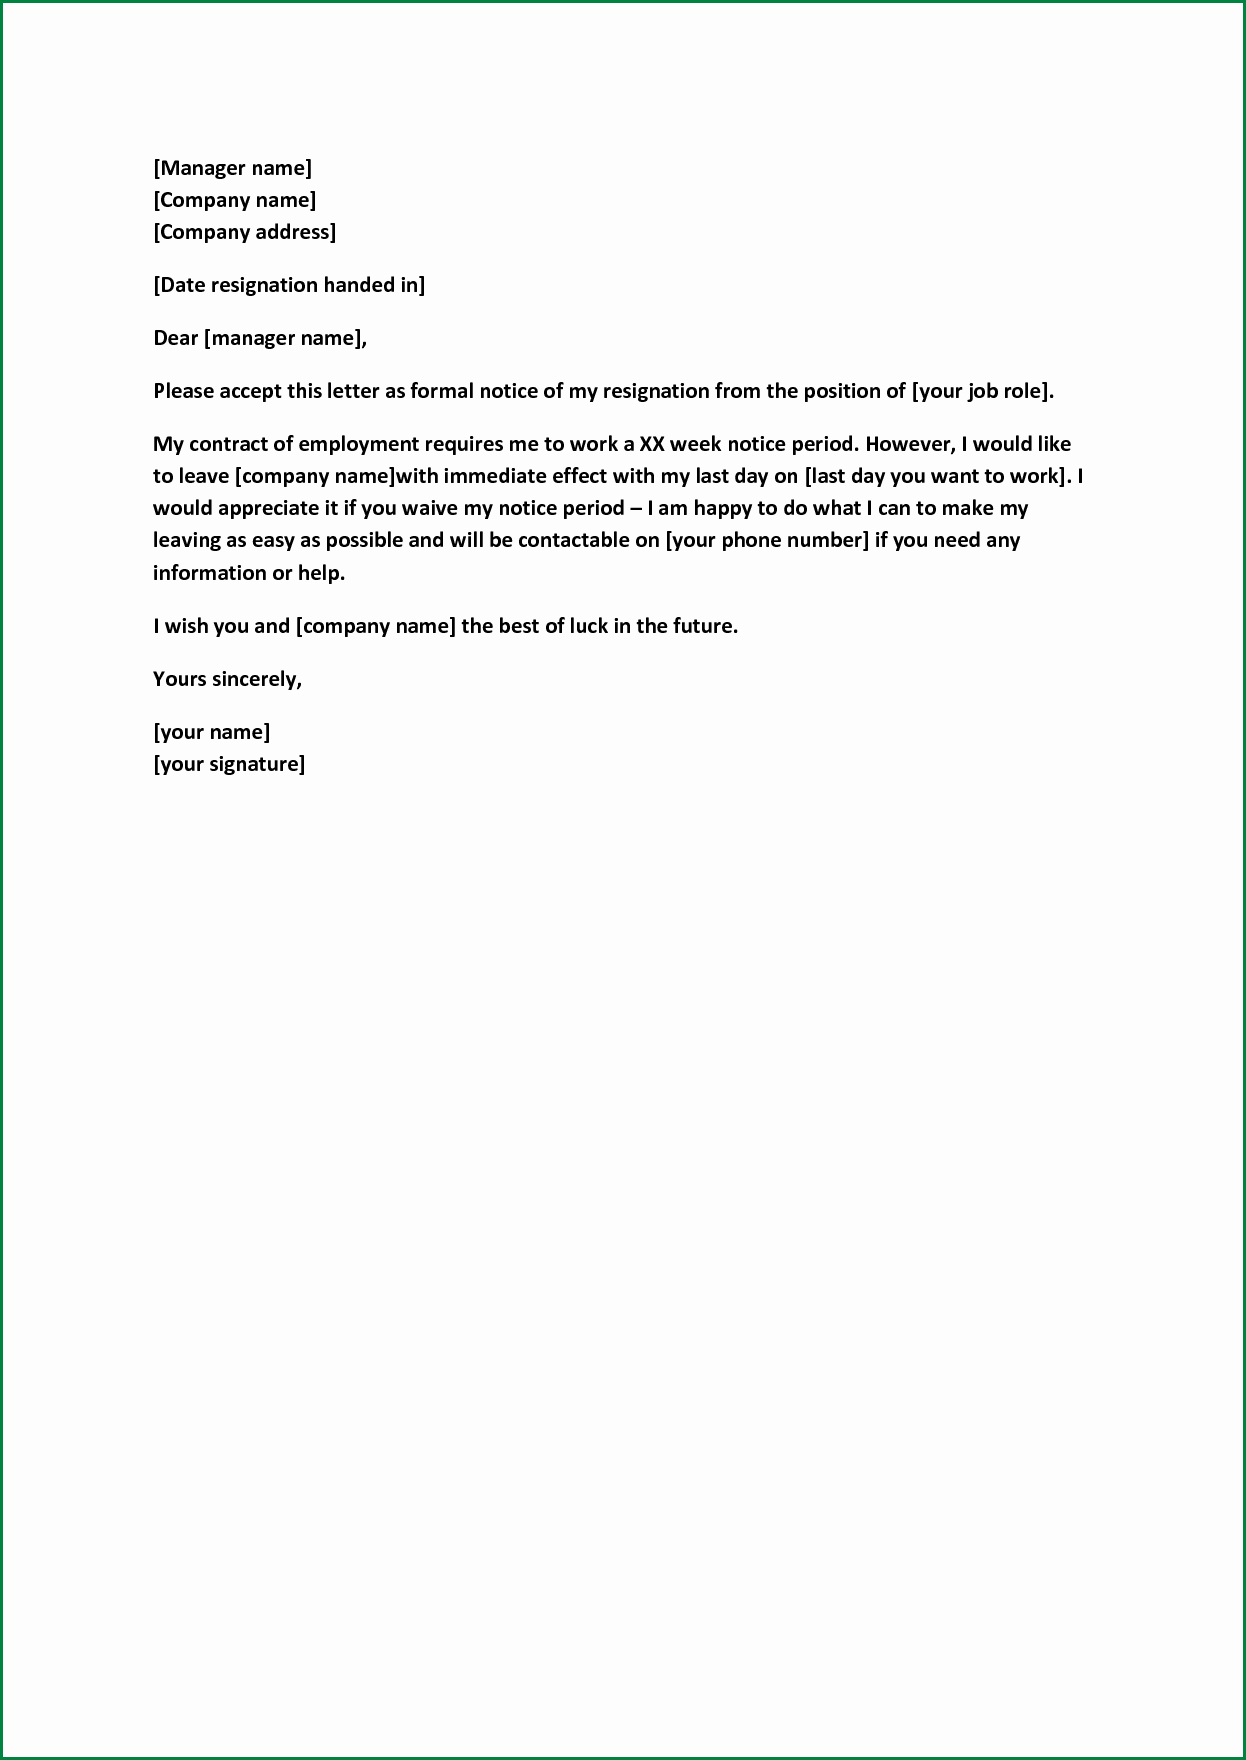 90 Day Probationary Period Offer Letter Inspirational formal Resignation Letter Sample with Notice Period